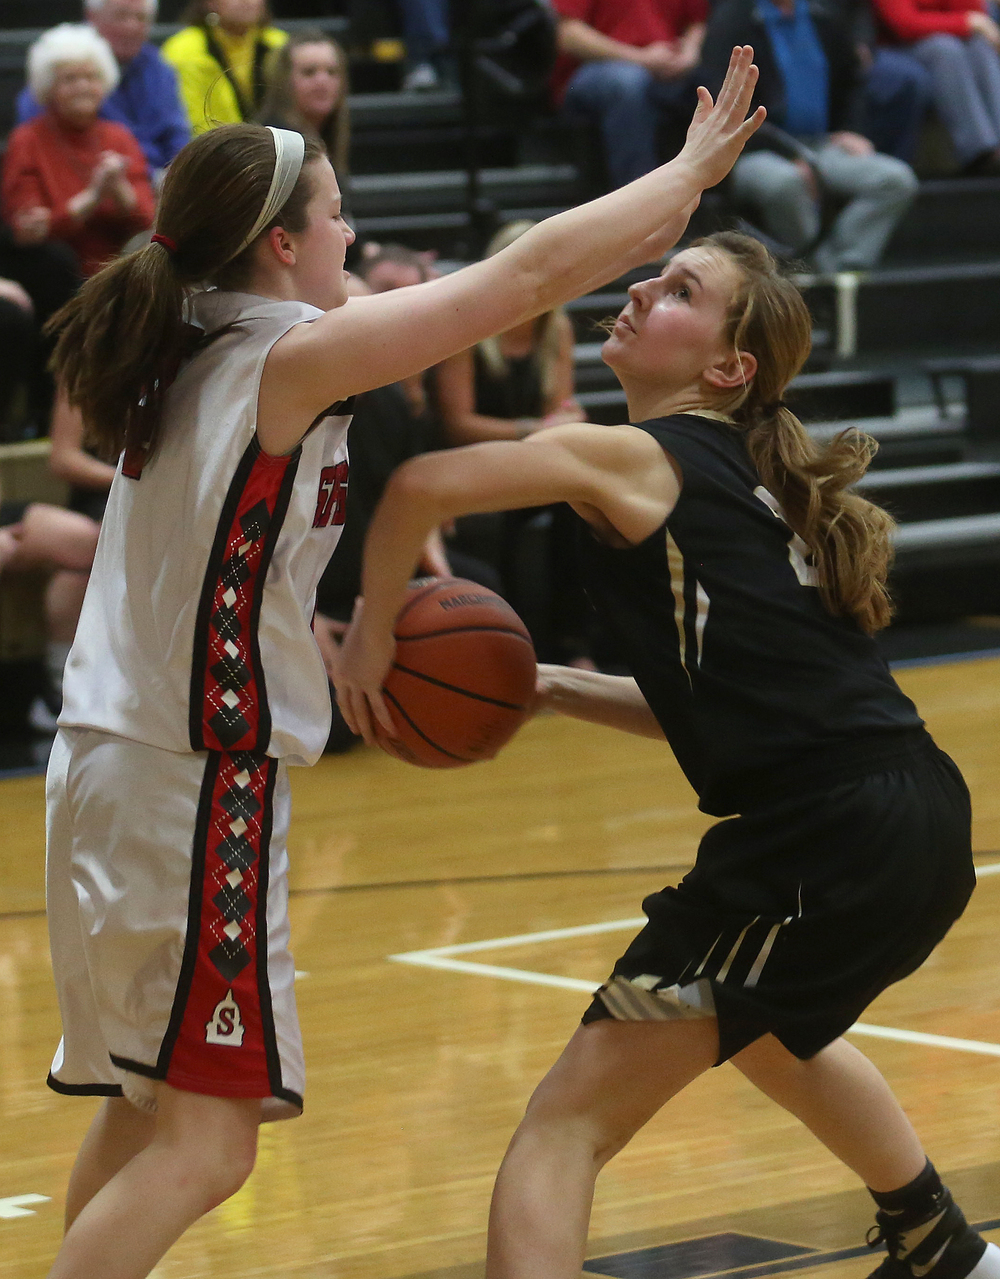 SHG player Lakyn Wagoner looks to make a shot while Springfield's Brooklyn Crum defends at left. David Spencer/The State Journal Register